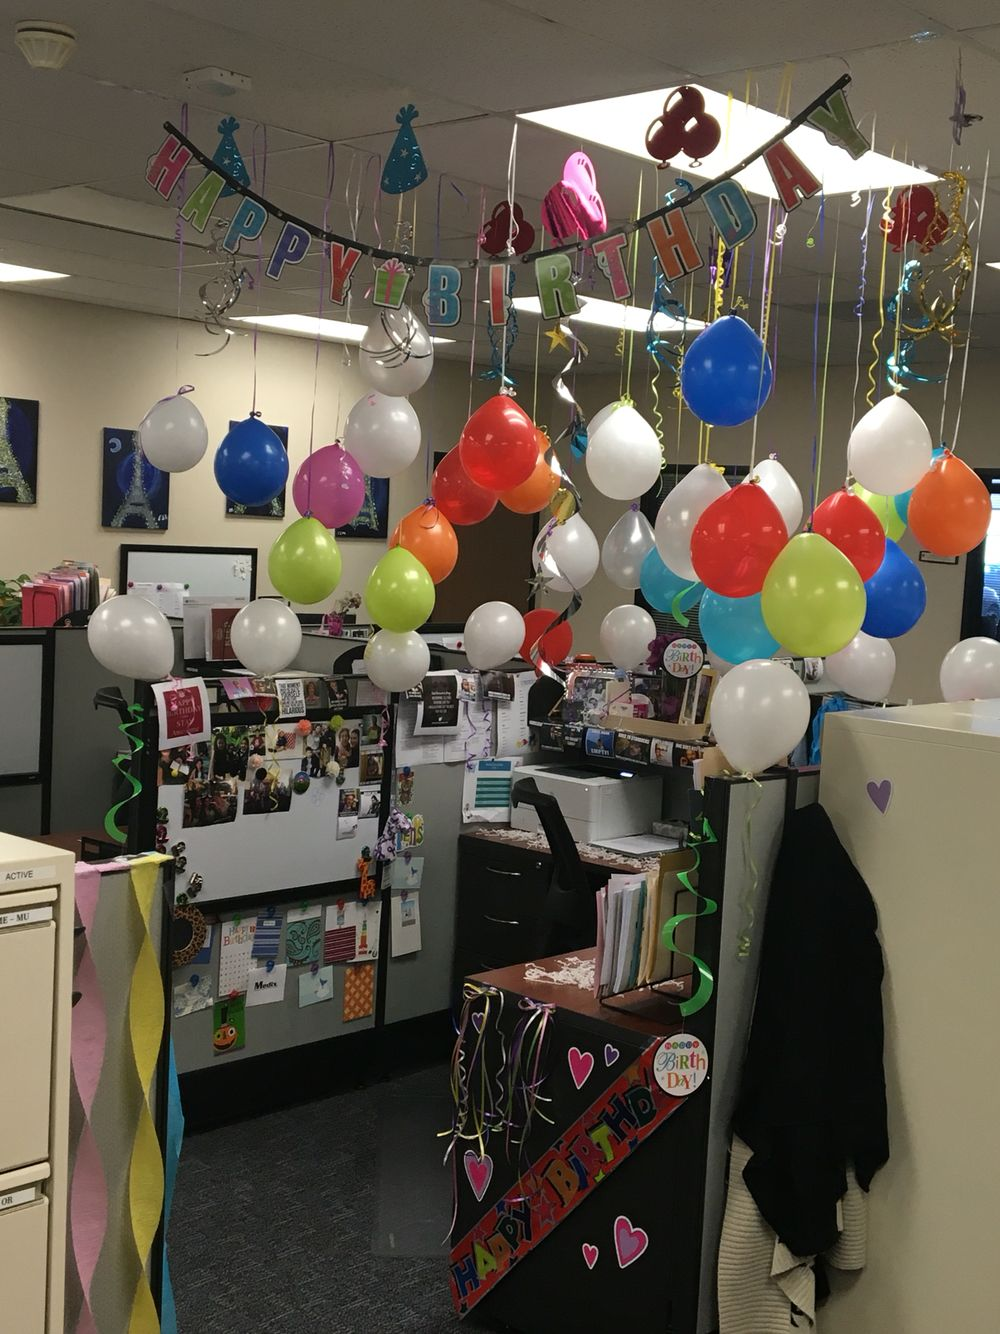 Cubicle Decorations For Birthday Cubicle Decoration Work Place Pinterest Cubicle Decorations